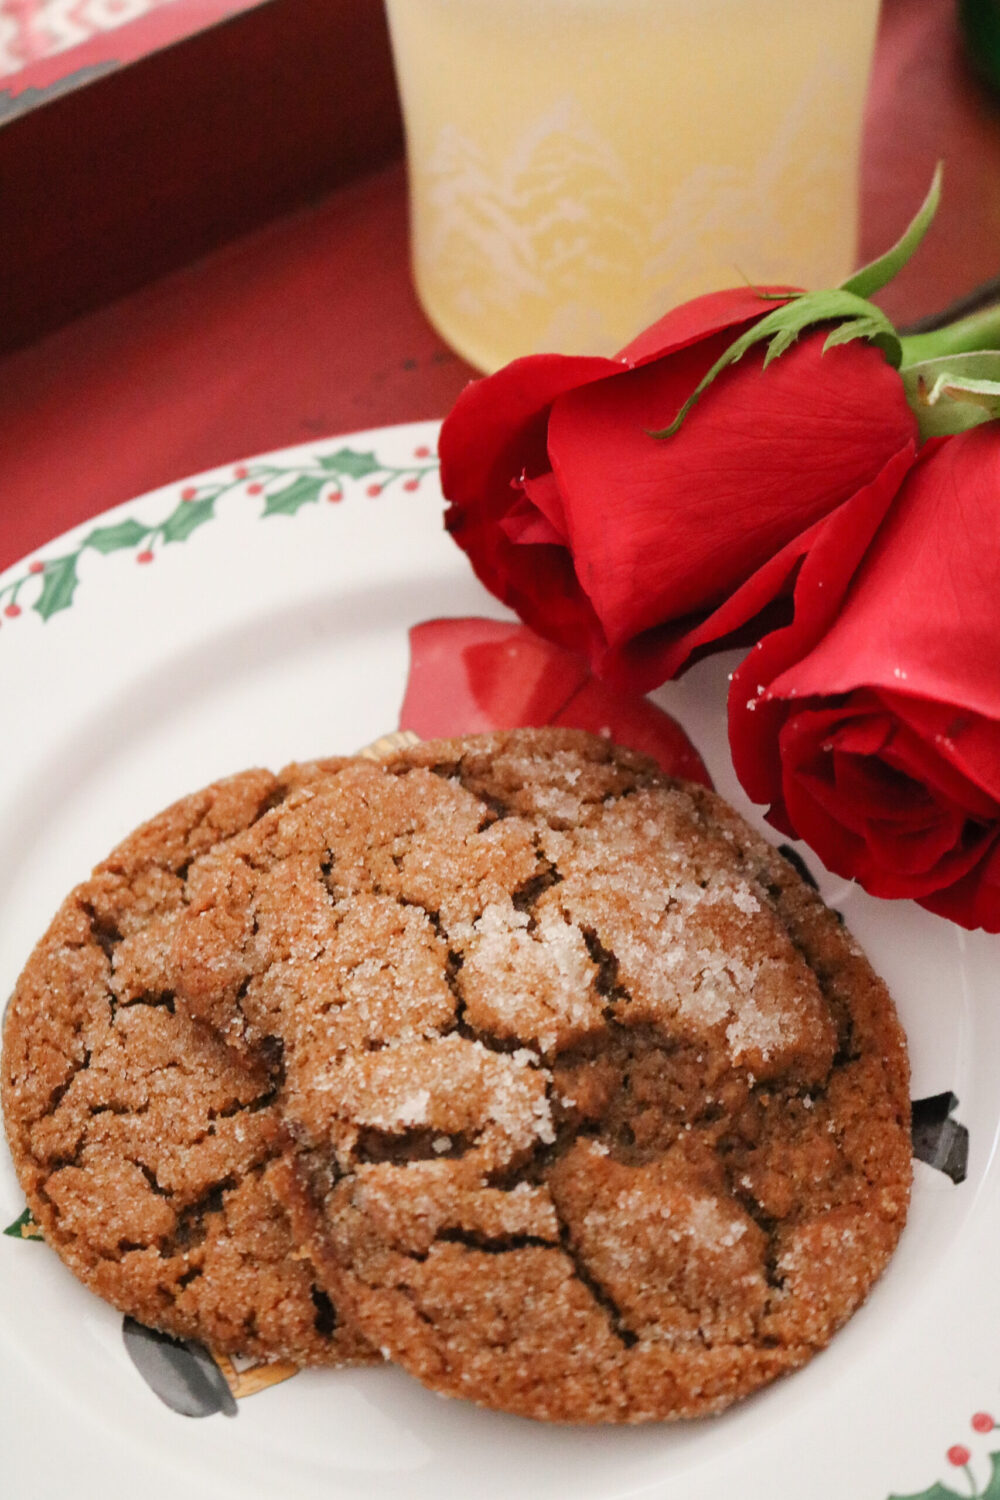 Chewy Vegan Molasses Cookie Recipe for the Holidays by Candace Cameron Bure I Dreaminlace.com #veganrecipes #christmascookie #ChristmasRecipe